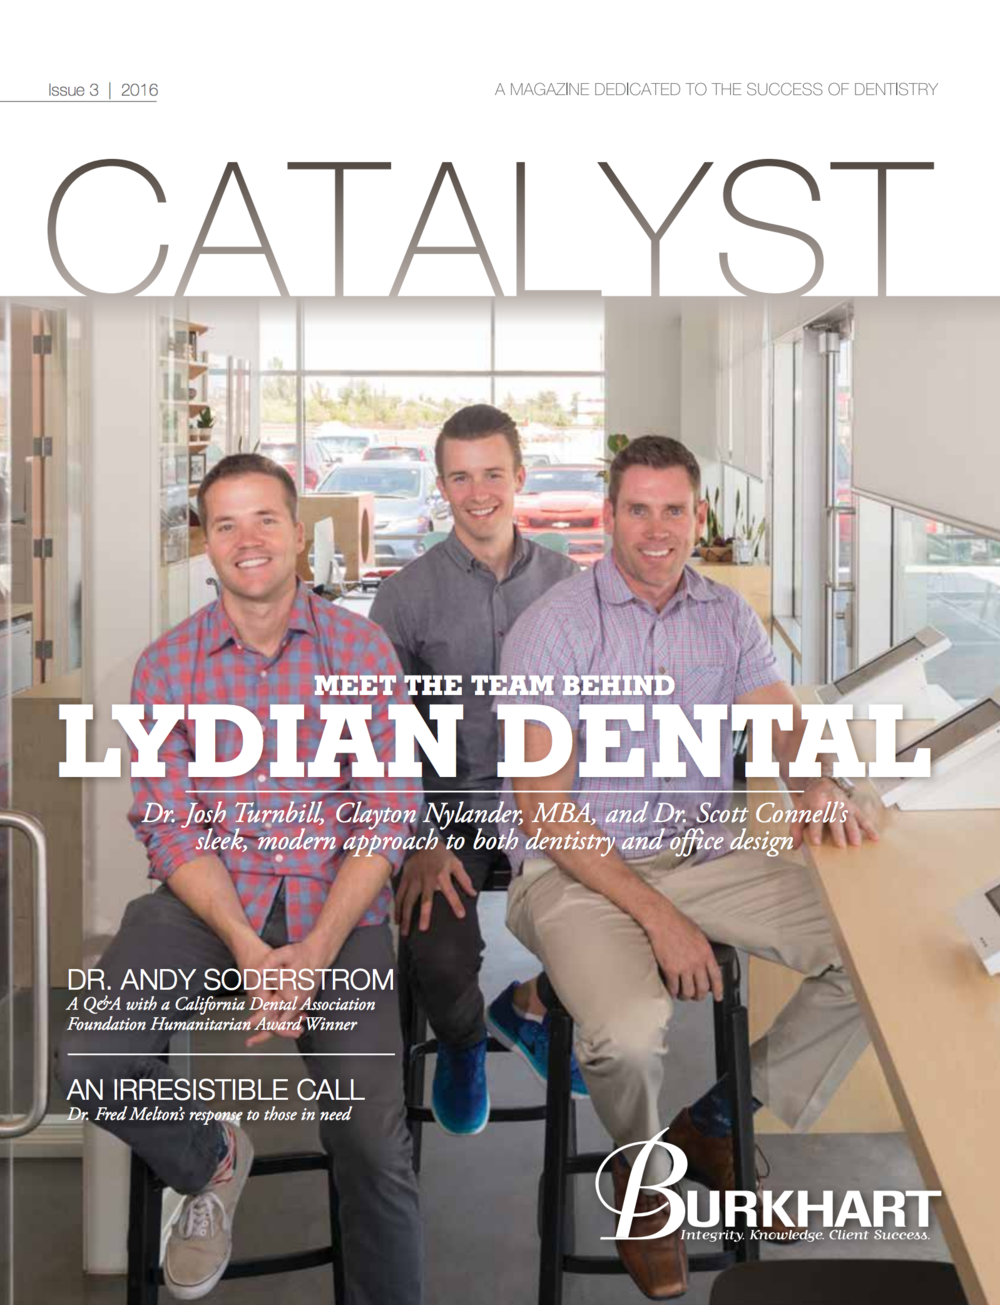 Burkhart_Dental_Catalylst_Mag_#3_2016_6.png